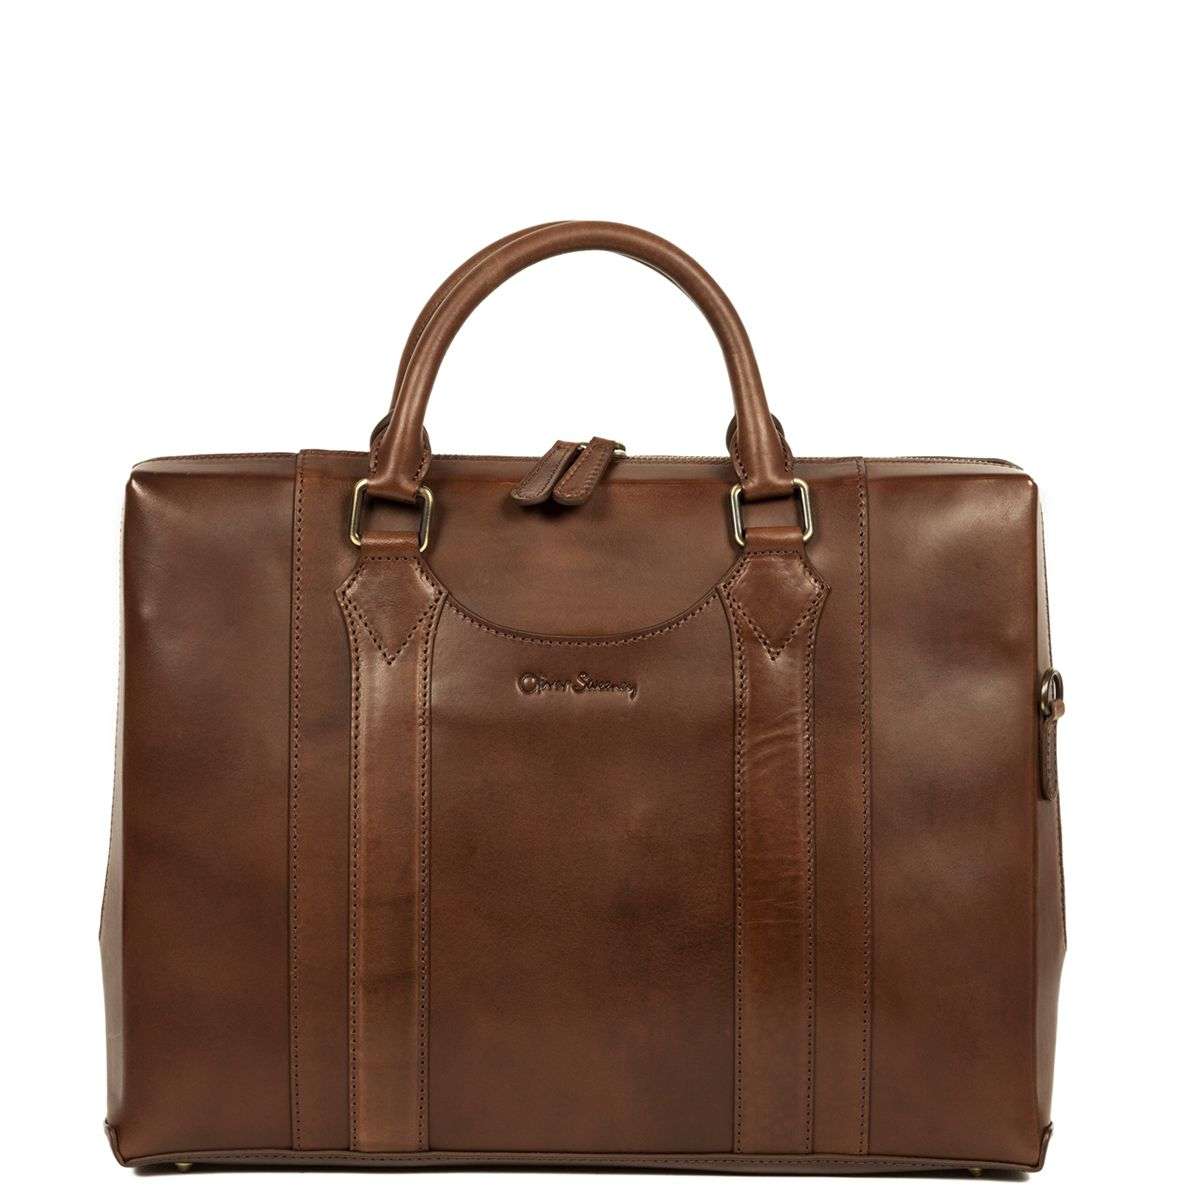 Oliver Sweeney Exeter Brown - Leather Laptop Bag